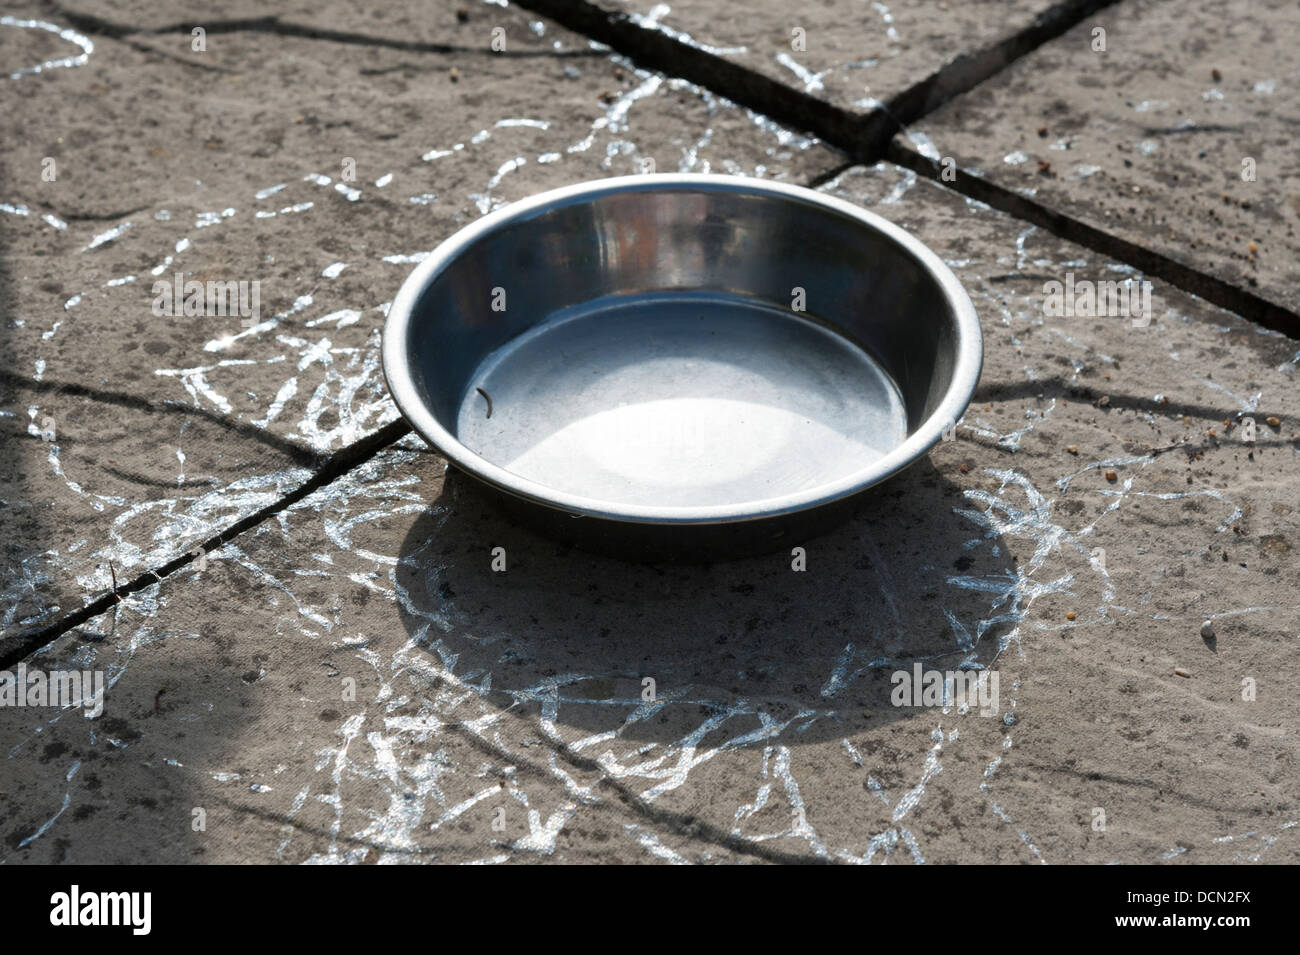 Metal pet food bowl in a garden showing snail and slug trails - Stock Image